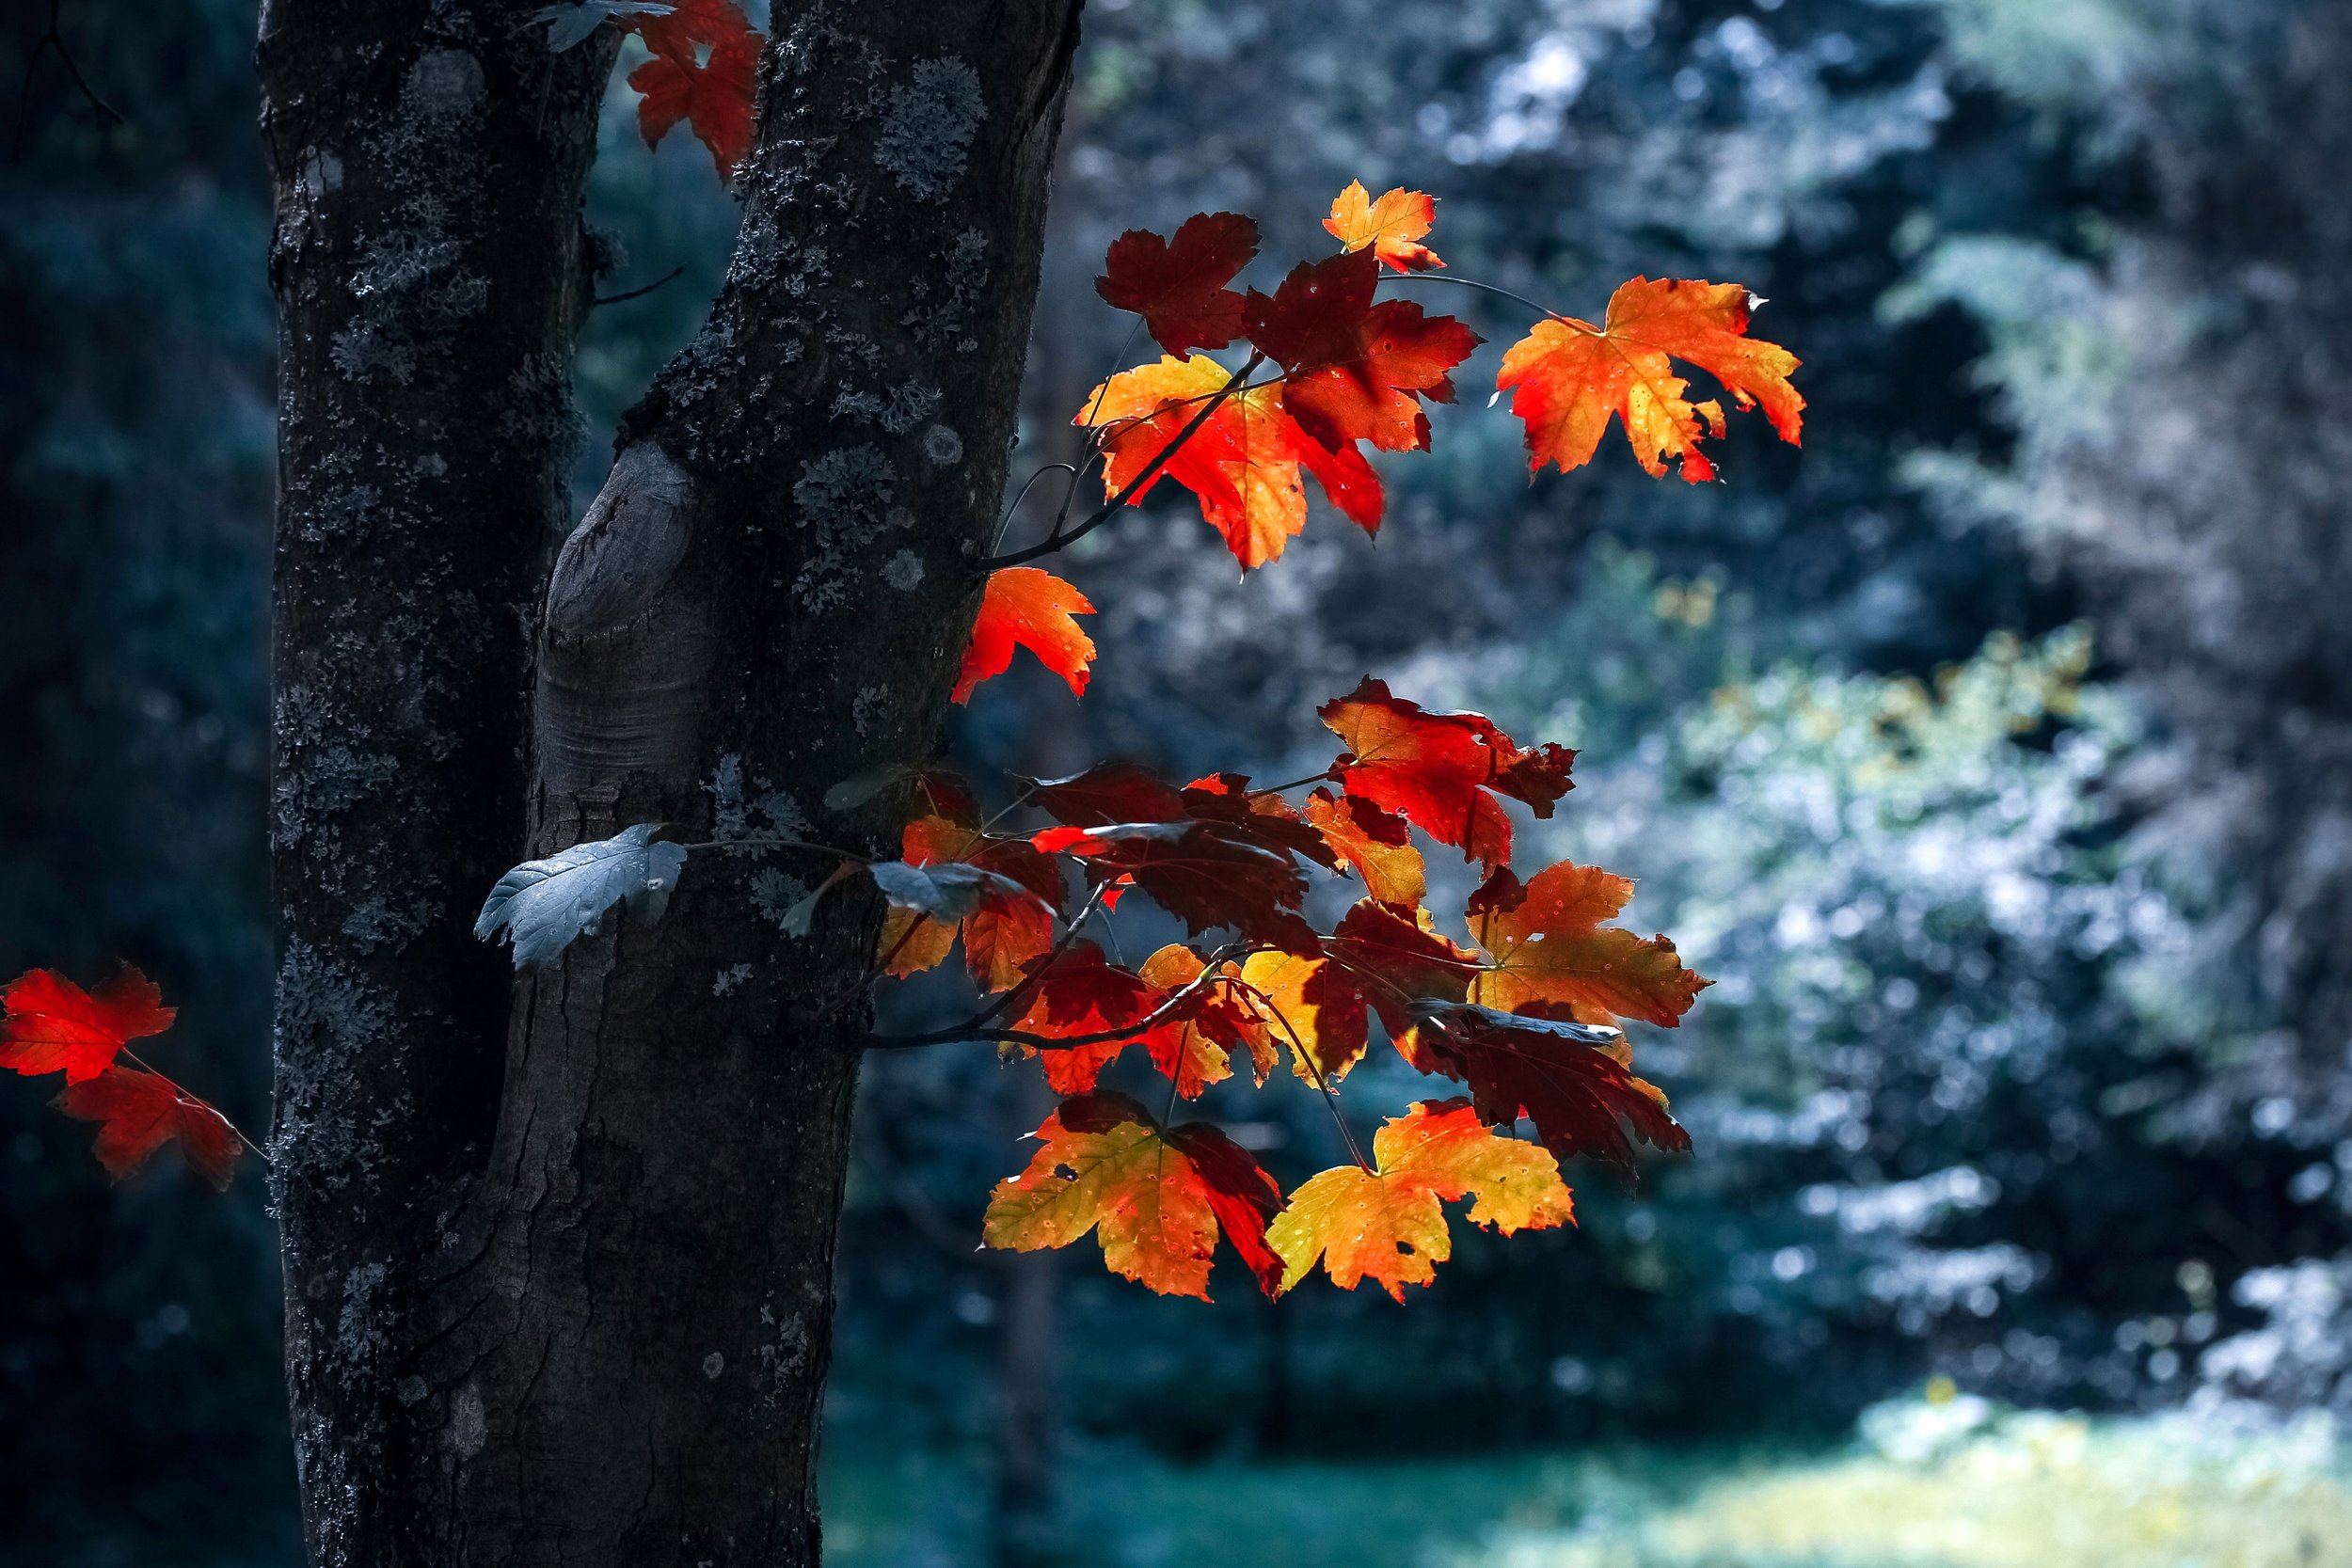 autumn-autumn-leaves-blur-589840.jpg